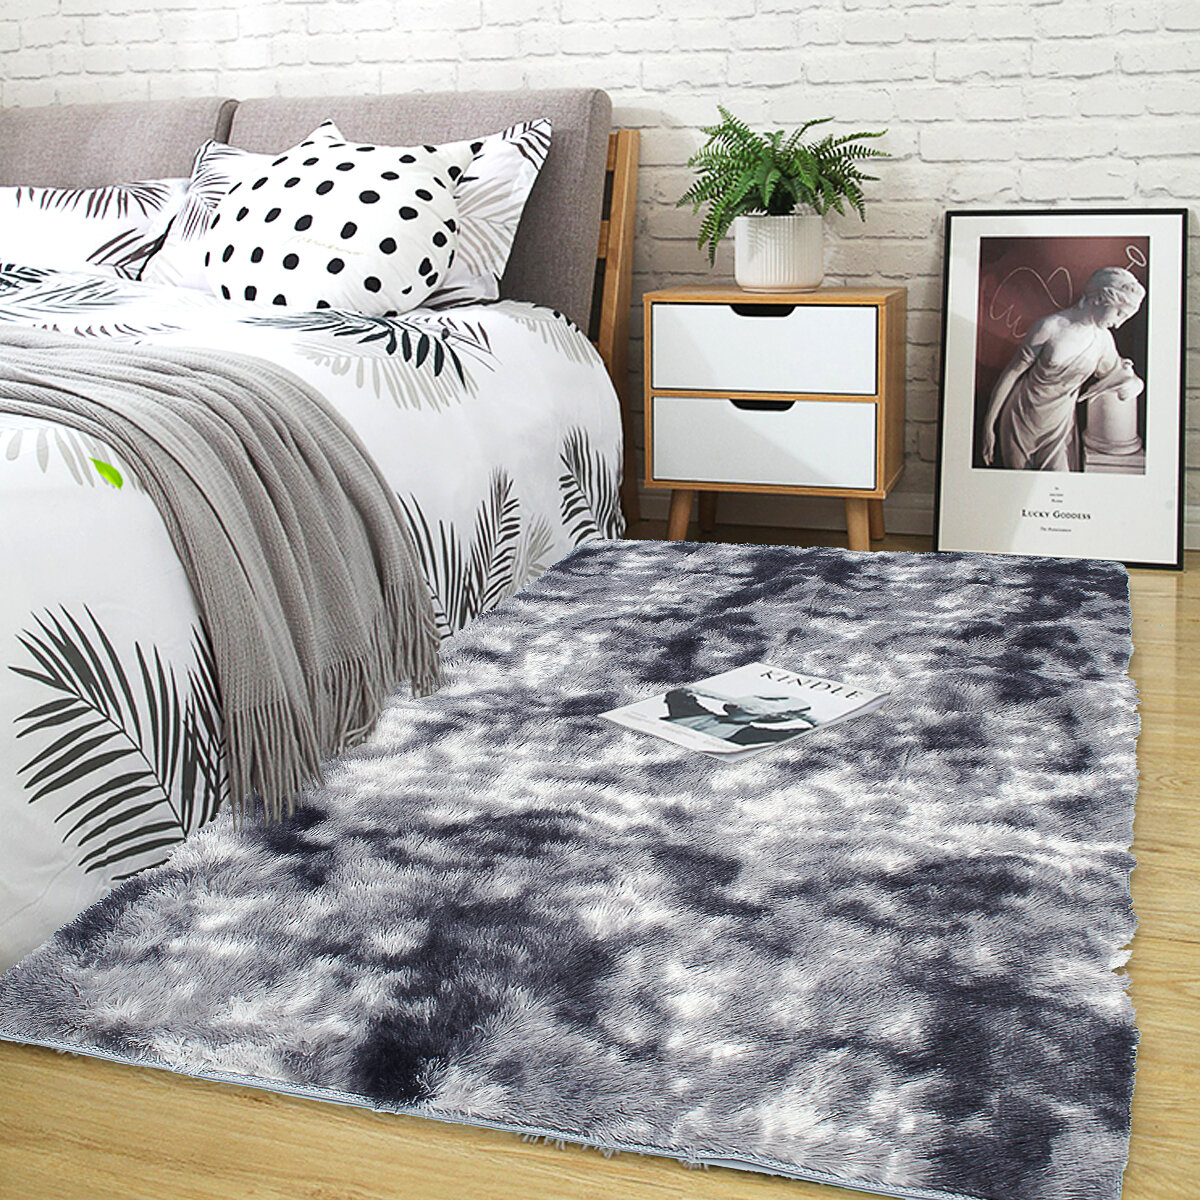 Long Hair Variegated Tie-dye Gradient Carpet Living Room Bedroom Bedside Blanket Coffee Table Cushion Full Carpet Floor